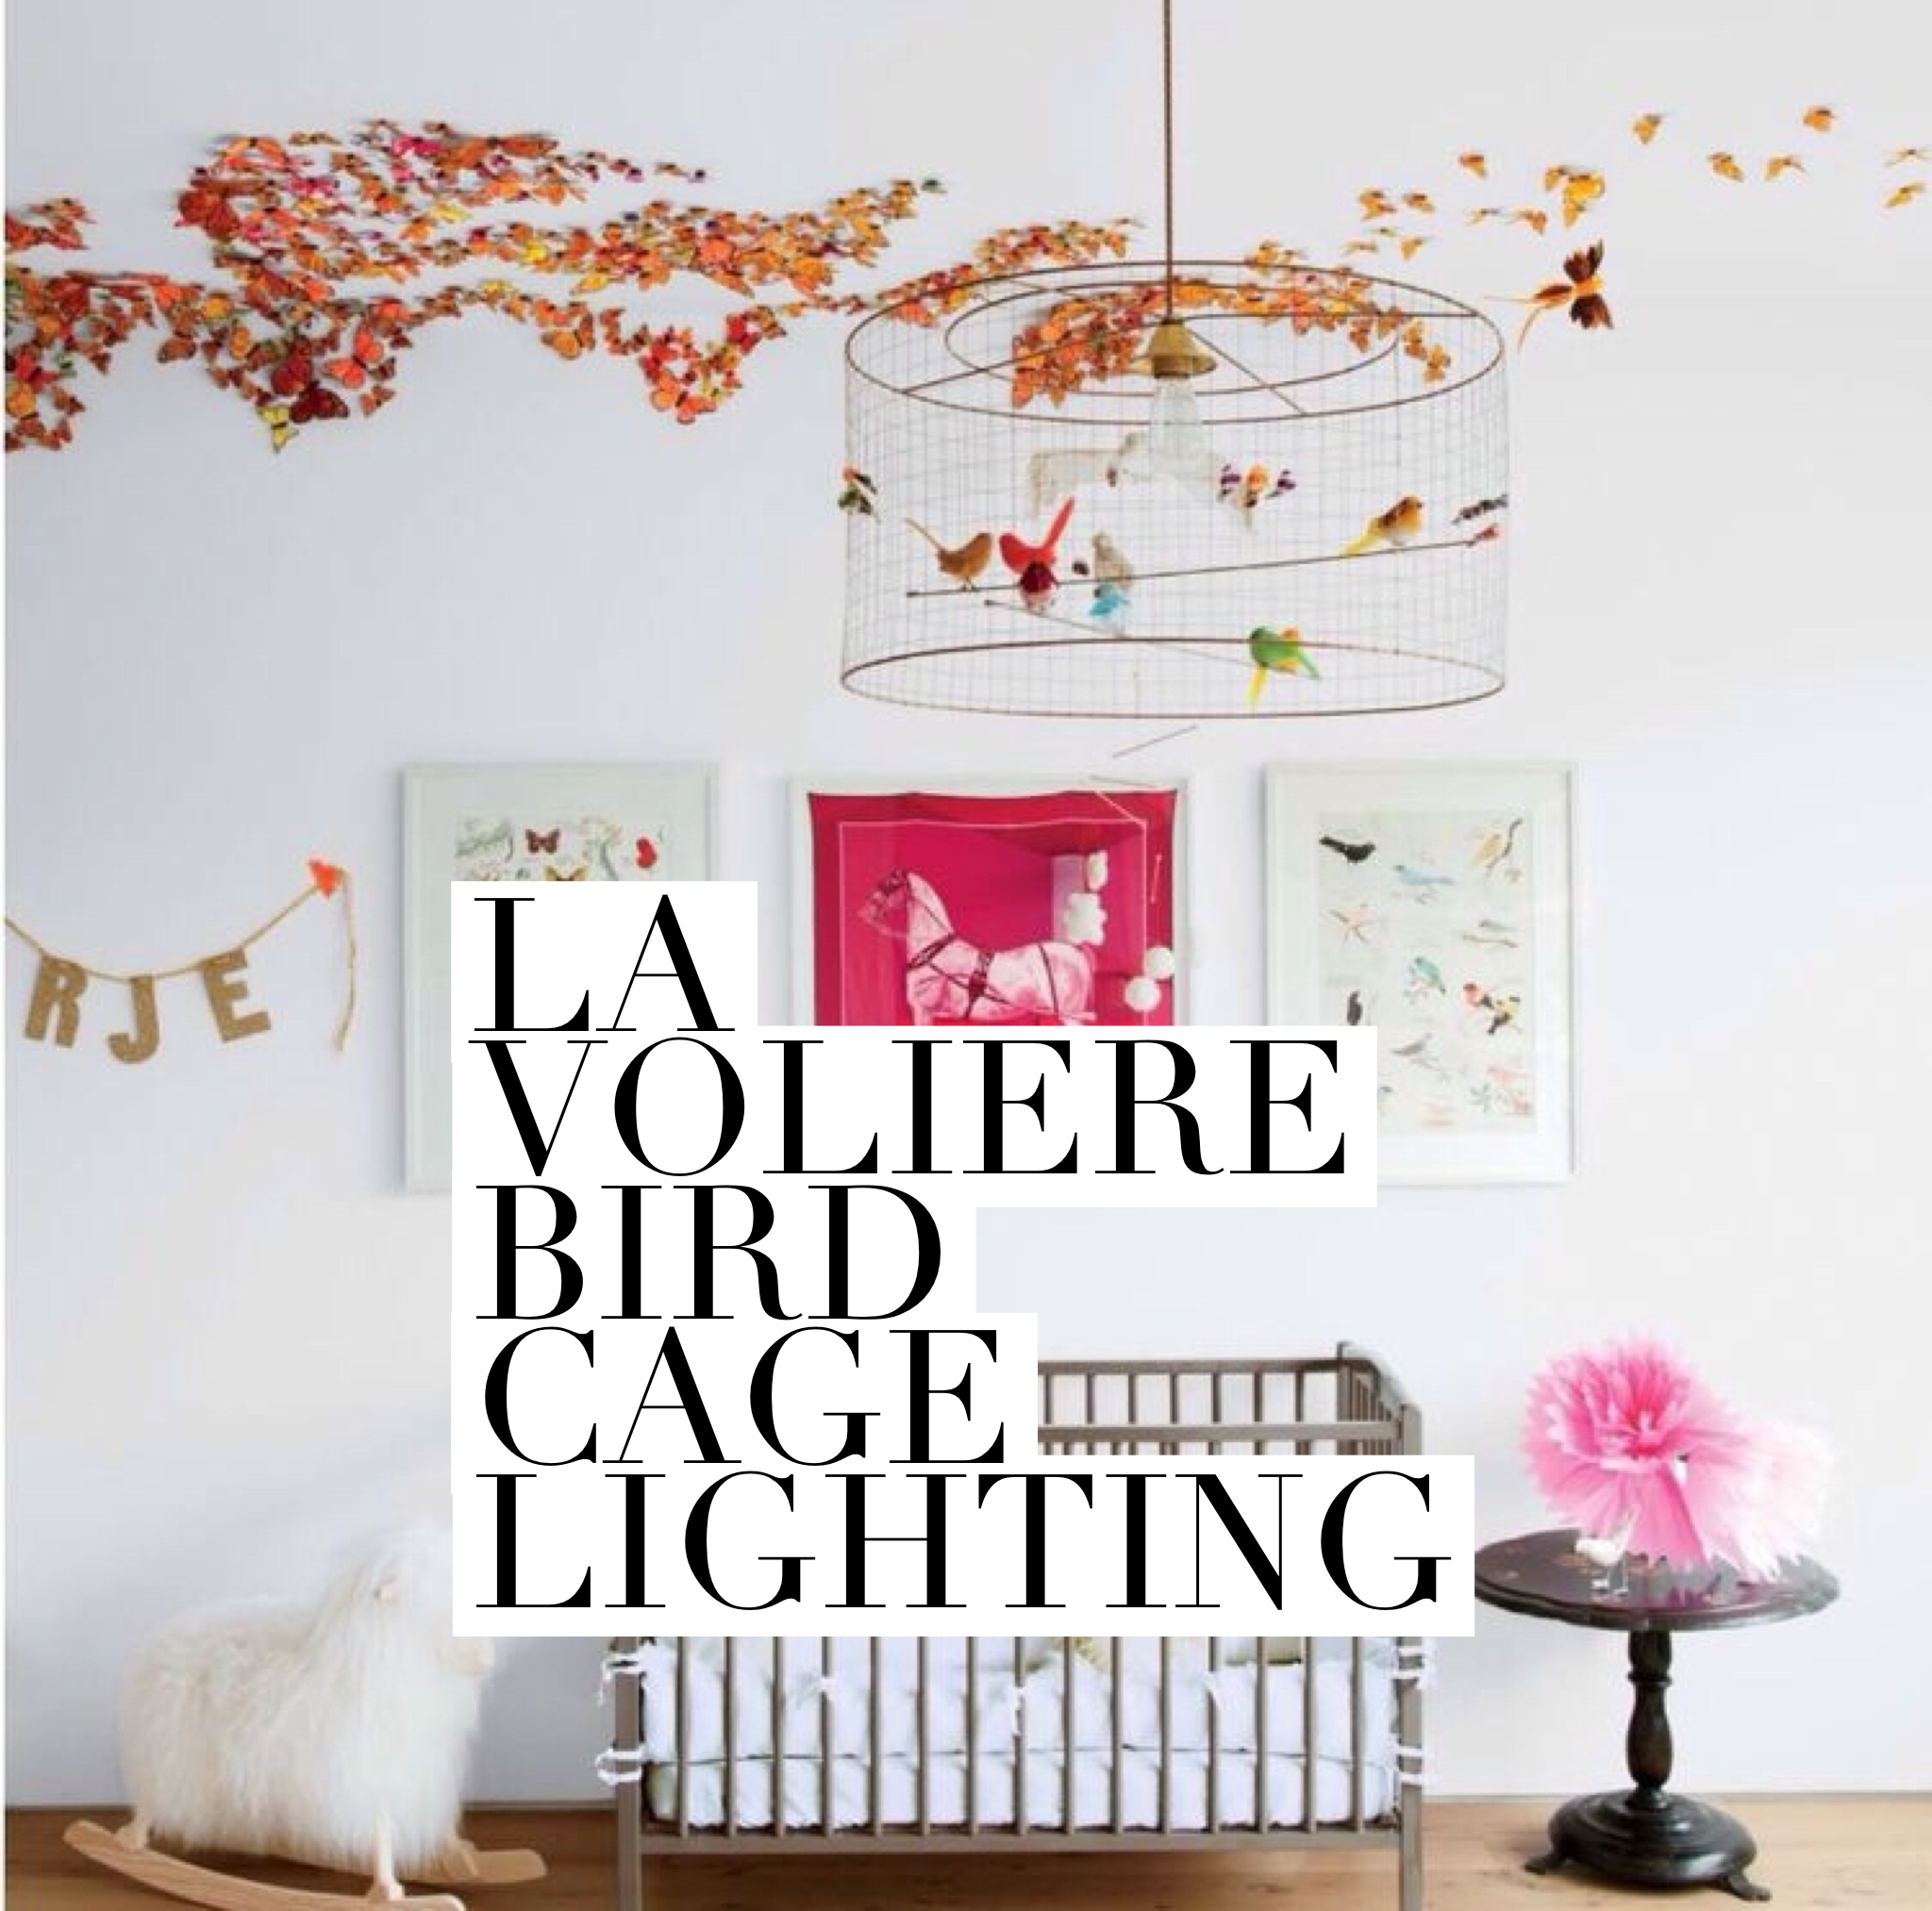 La volieres bird cage lighting collection including wall lights la volieres bird cage lighting collection including wall lights table lamps floor lamp and geotapseo Image collections